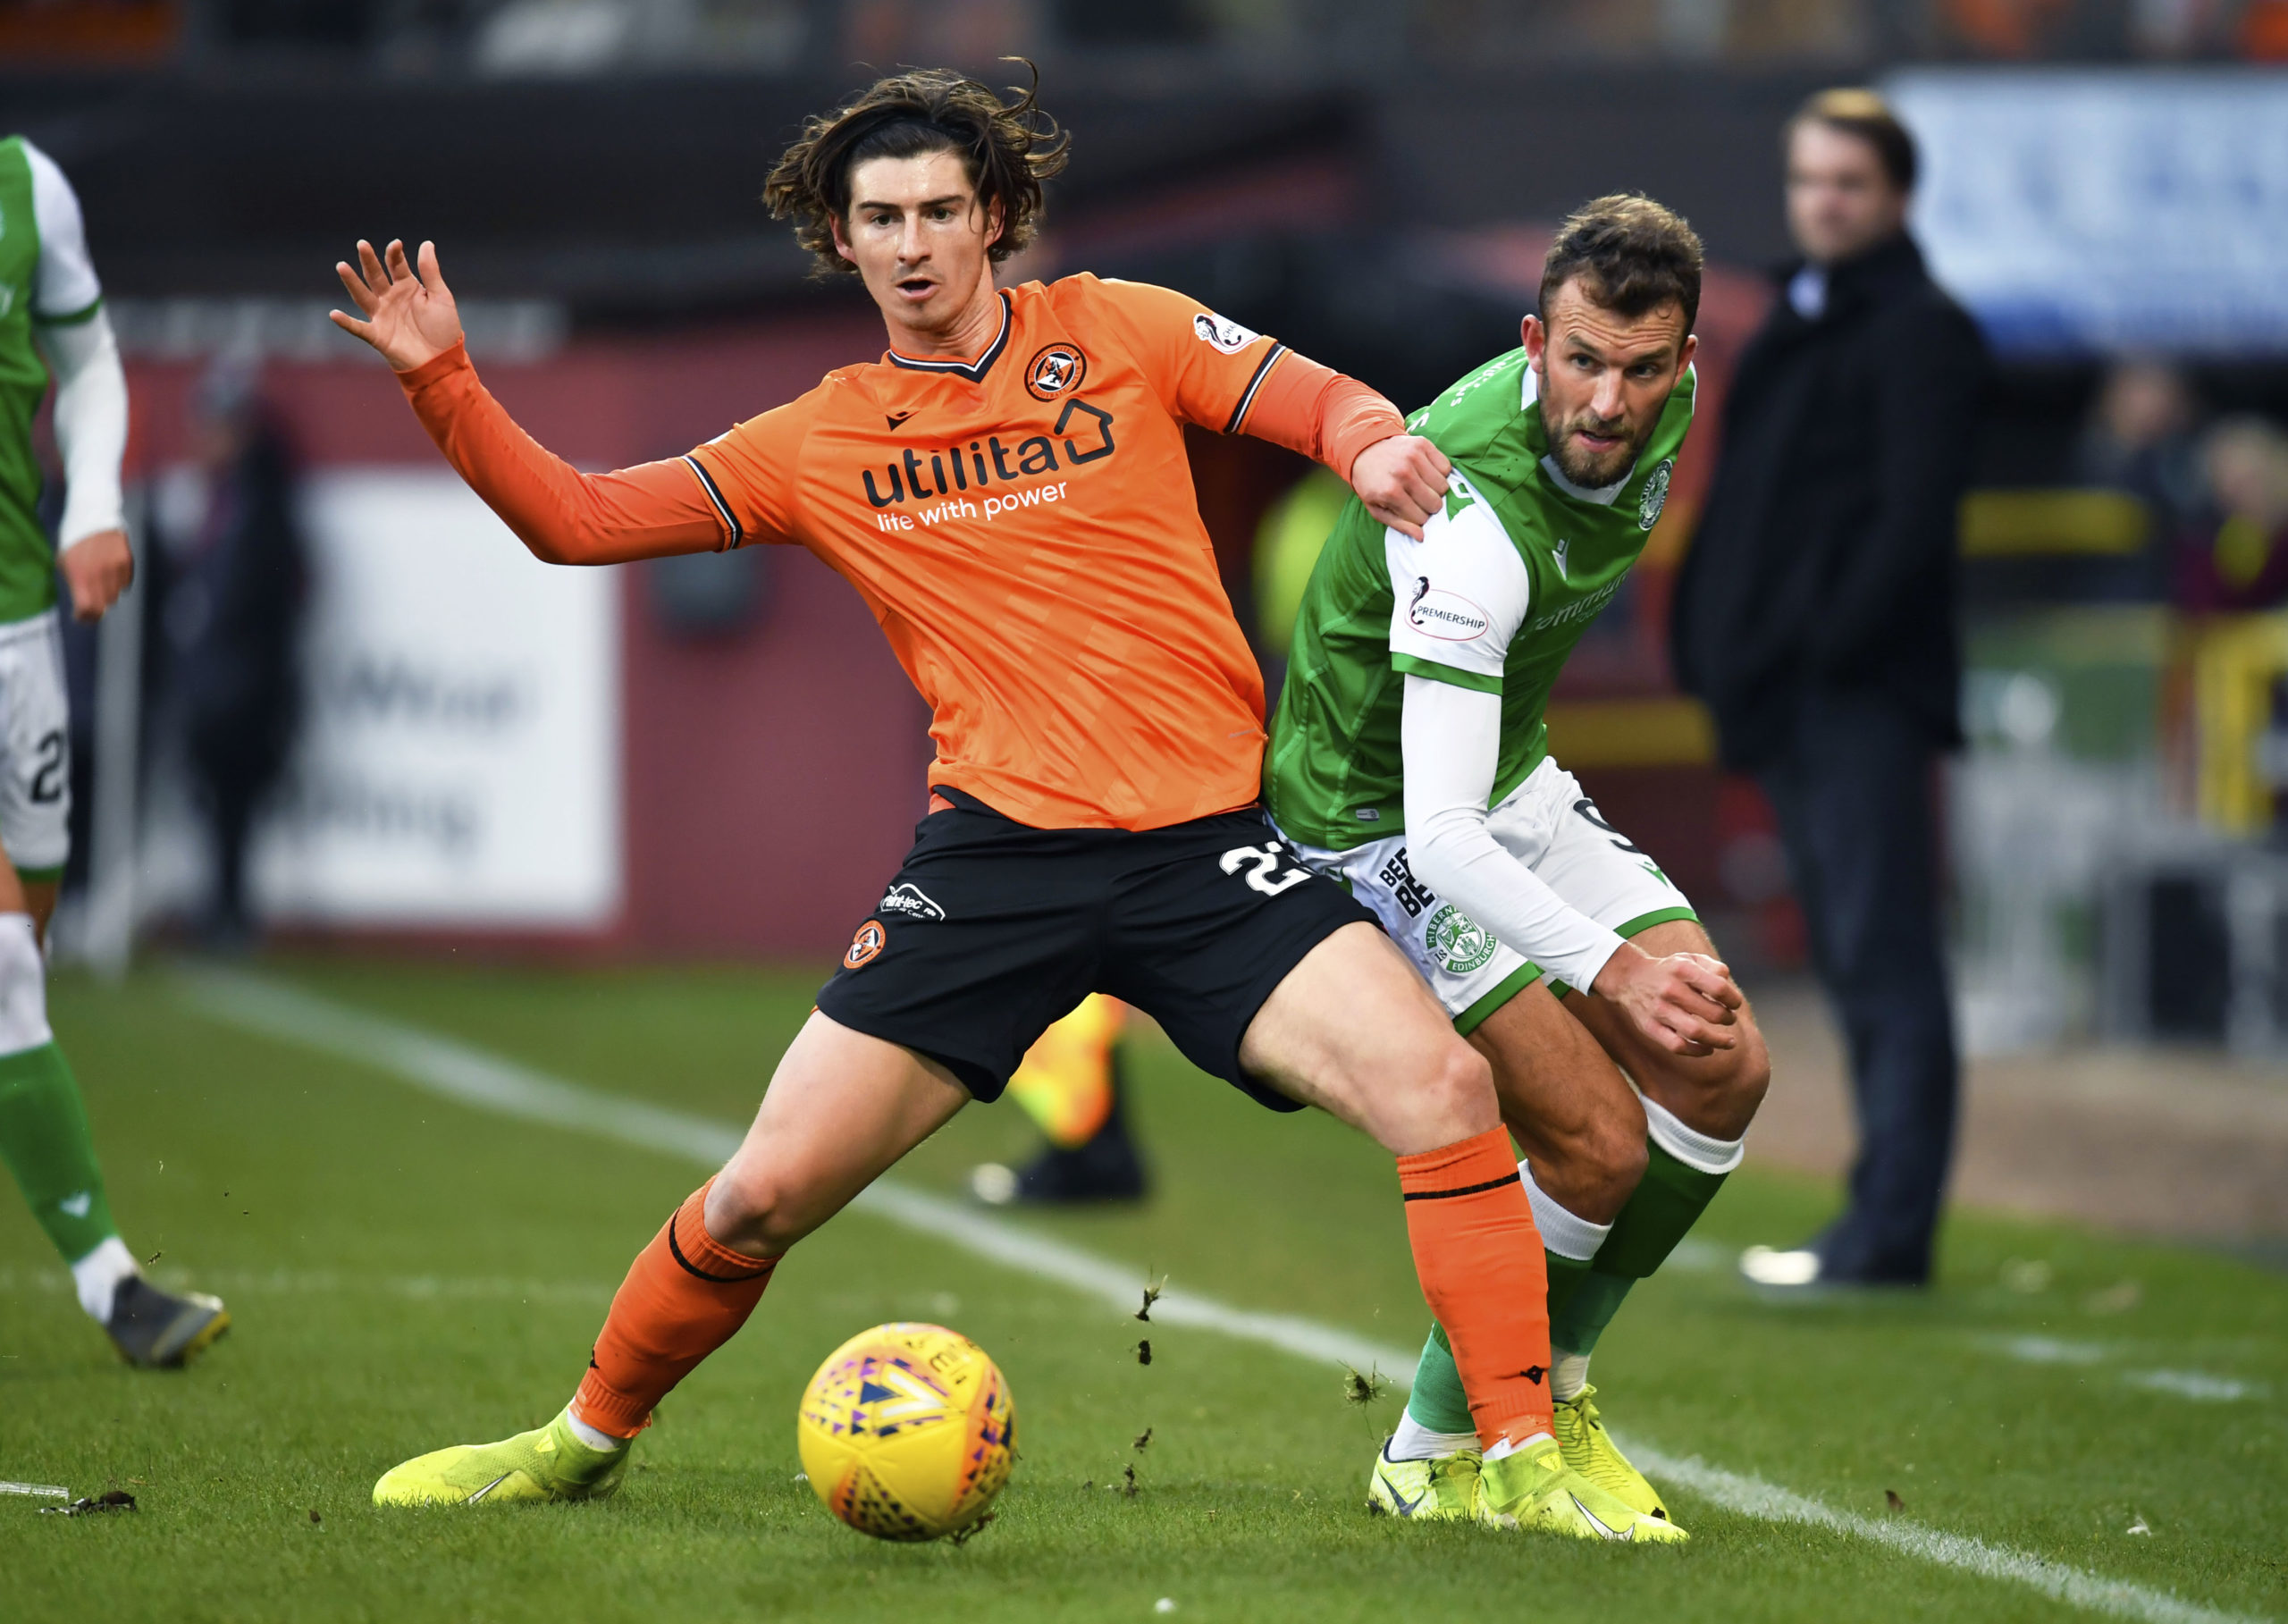 Ian Harkes in action for Tangerines against Hibs in the Scottish Cup last season.